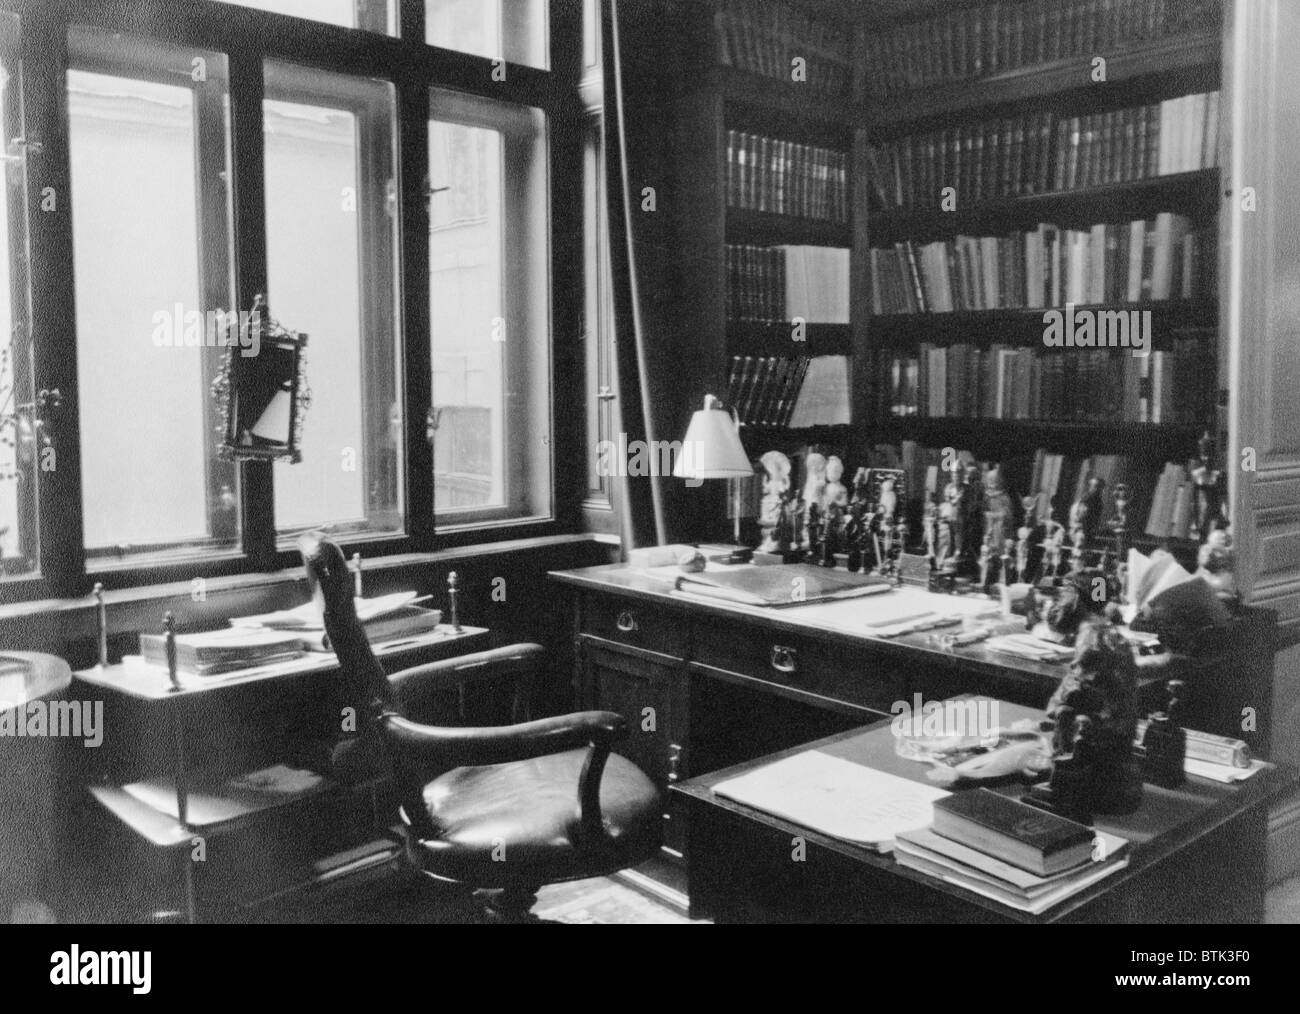 Sigmund Freud's writing desk in his office in Vienna as it looked in 1938 before his emigration to England when - Stock Image